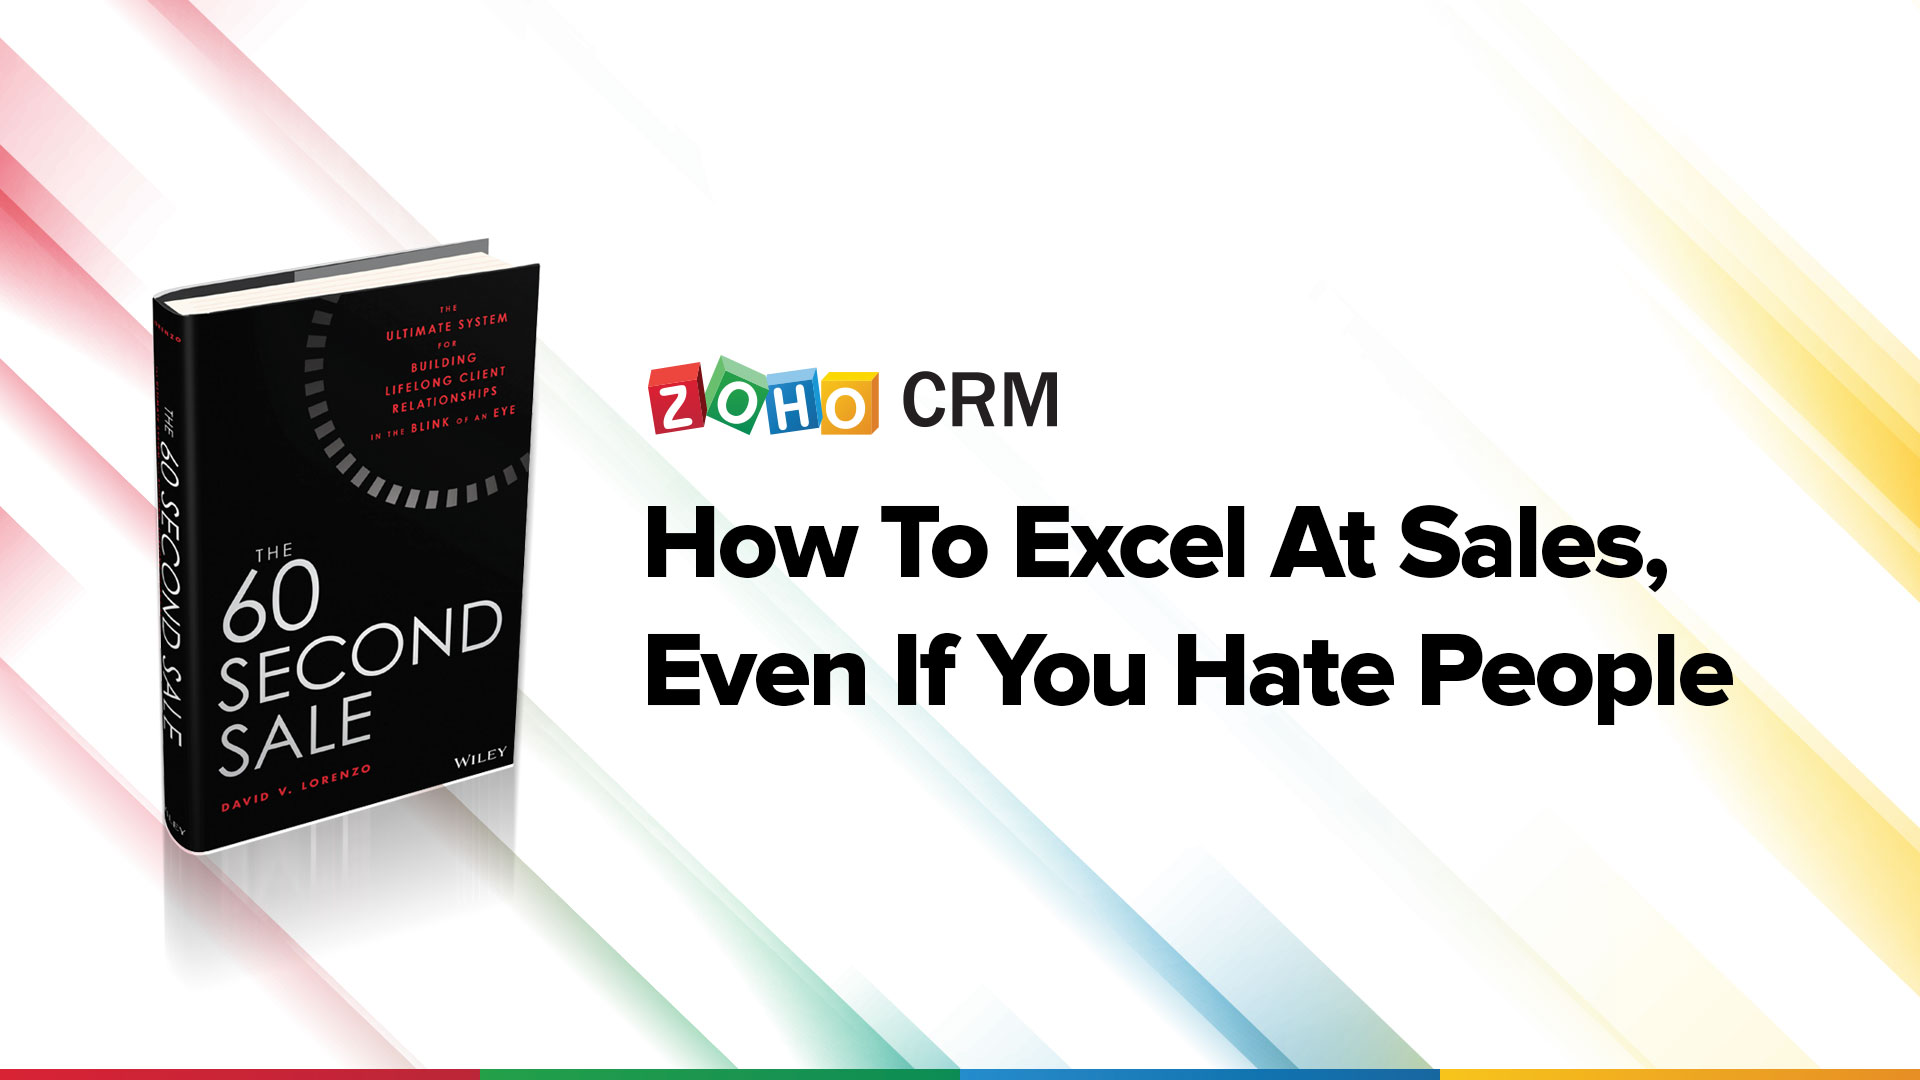 How to excel at sales, even if you hate people